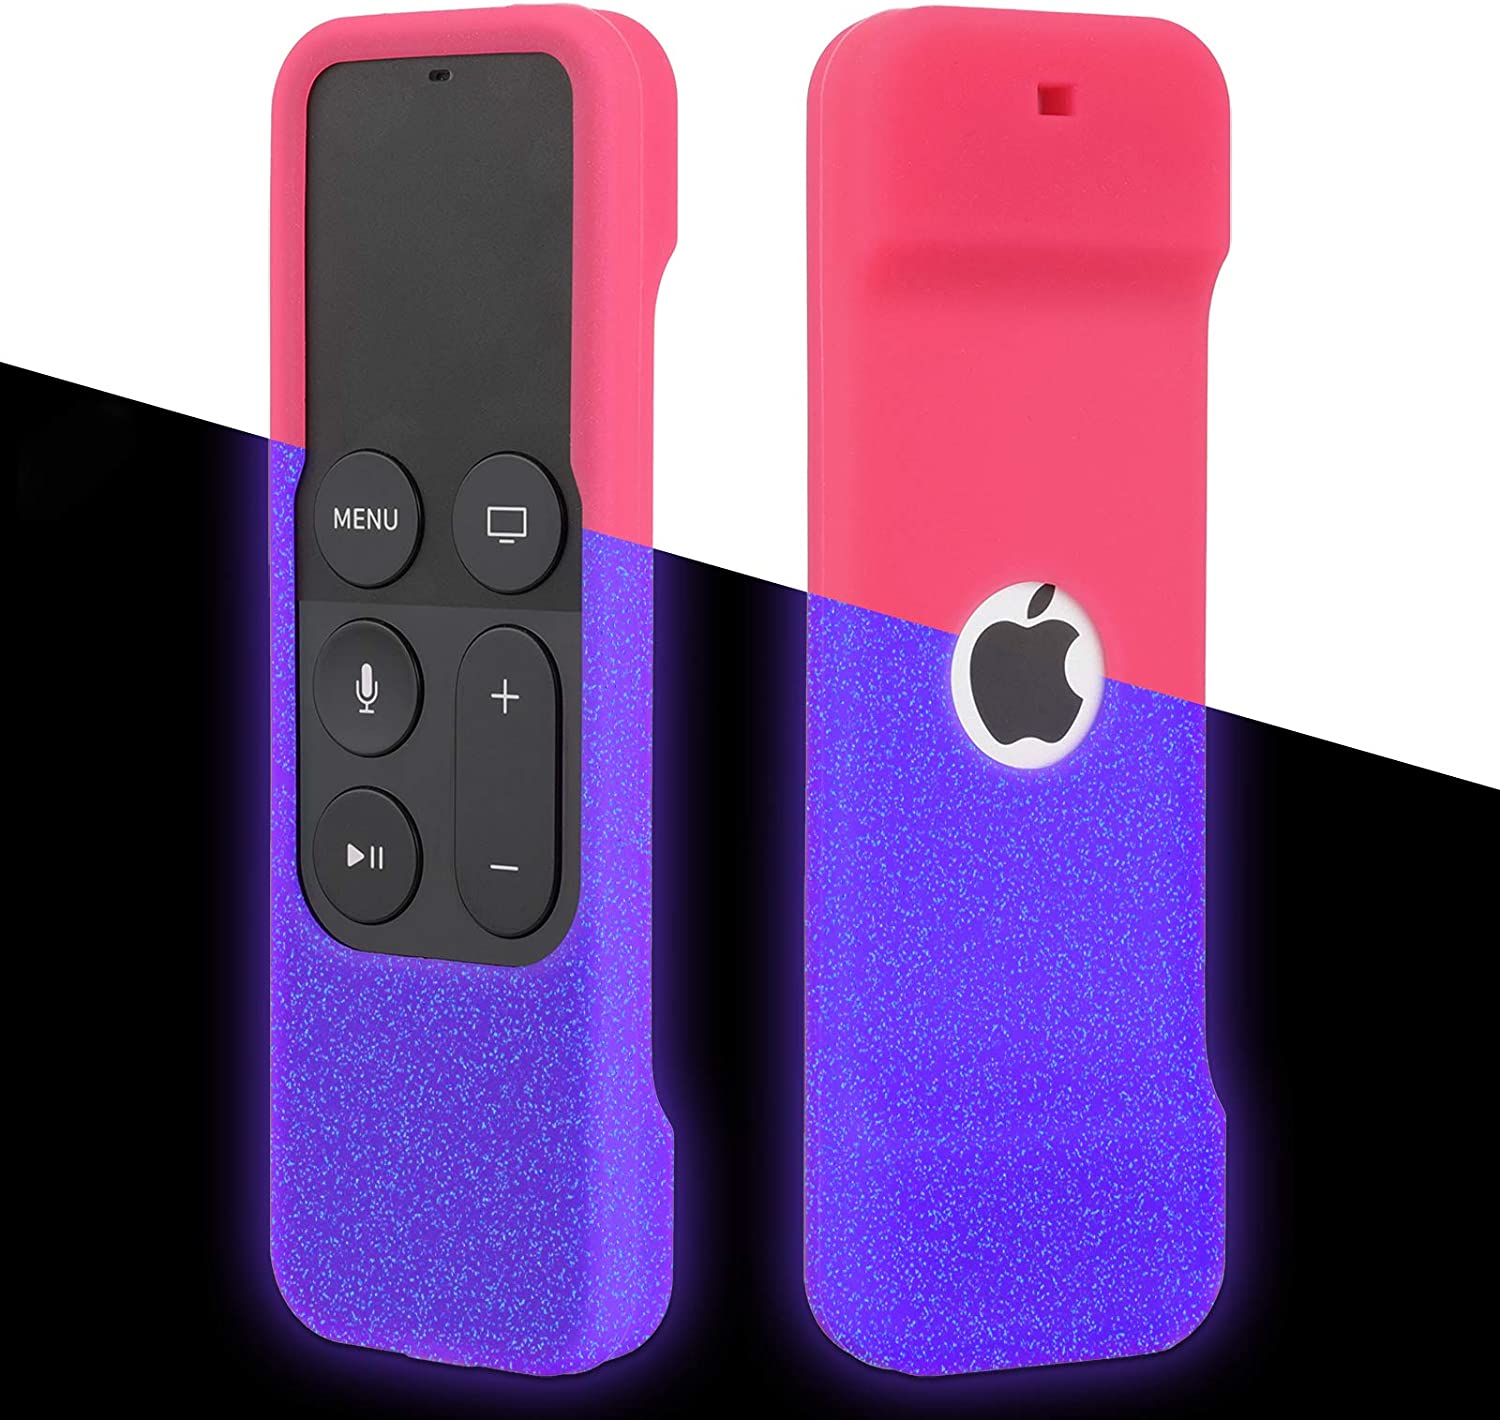 [Nightglow] Case for Apple TV 4K / 4th / 5th Gen Remote, Akwox Light Weight [Anti Slip] Shock Proof Silicone Cover for Apple TV 4K Siri Remote Controller [Lanyard Included]